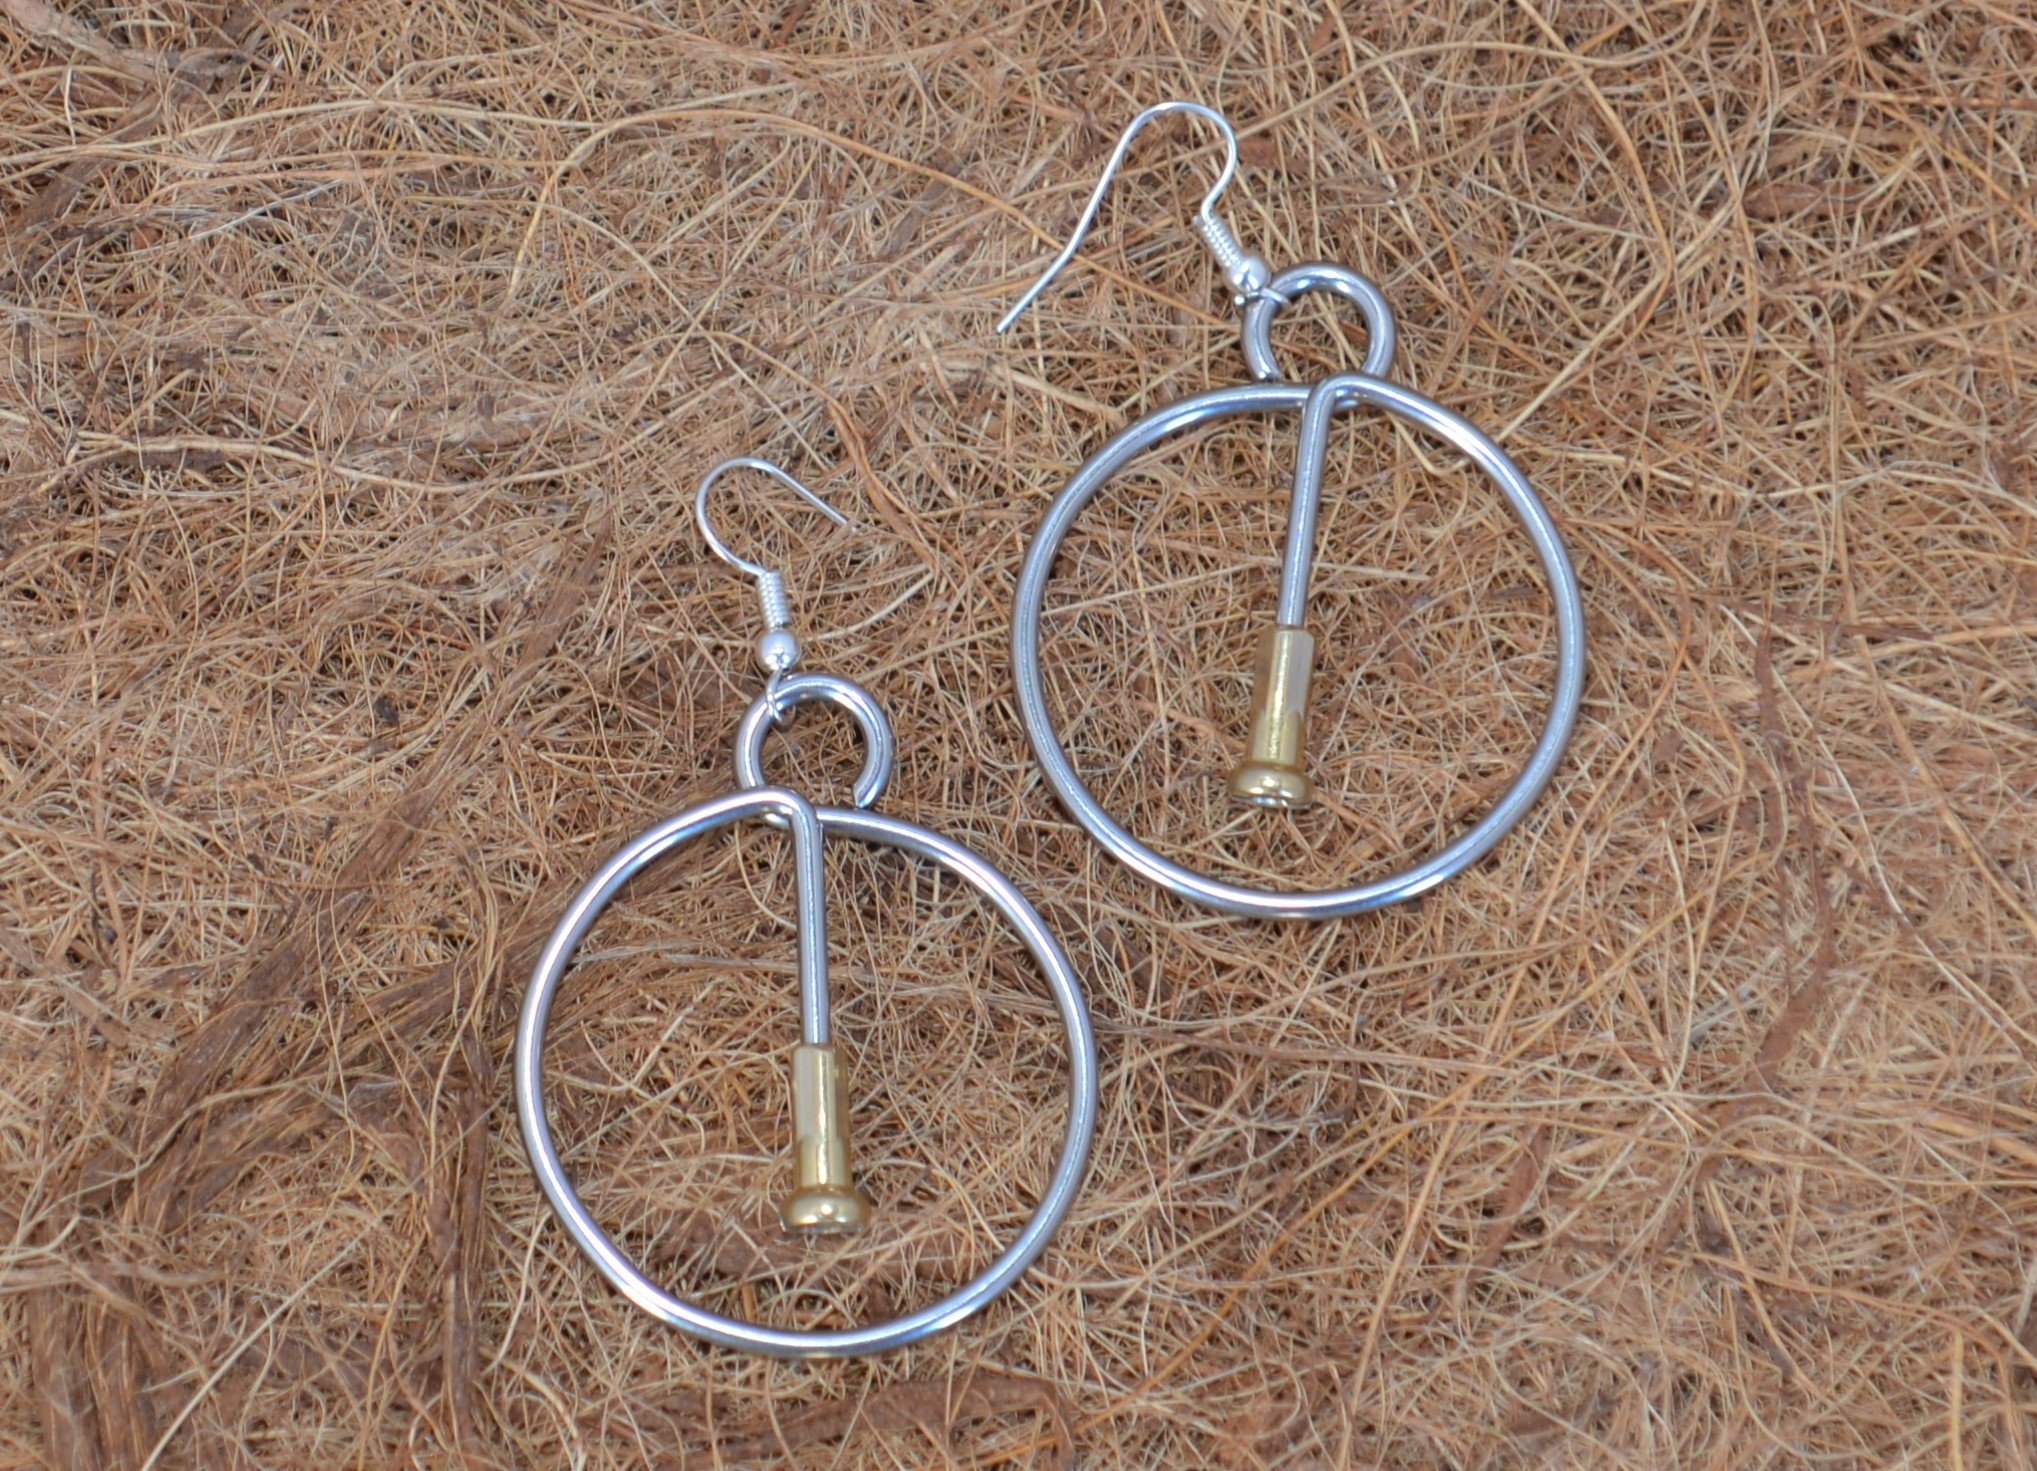 Spoke in a Wheel Earrings